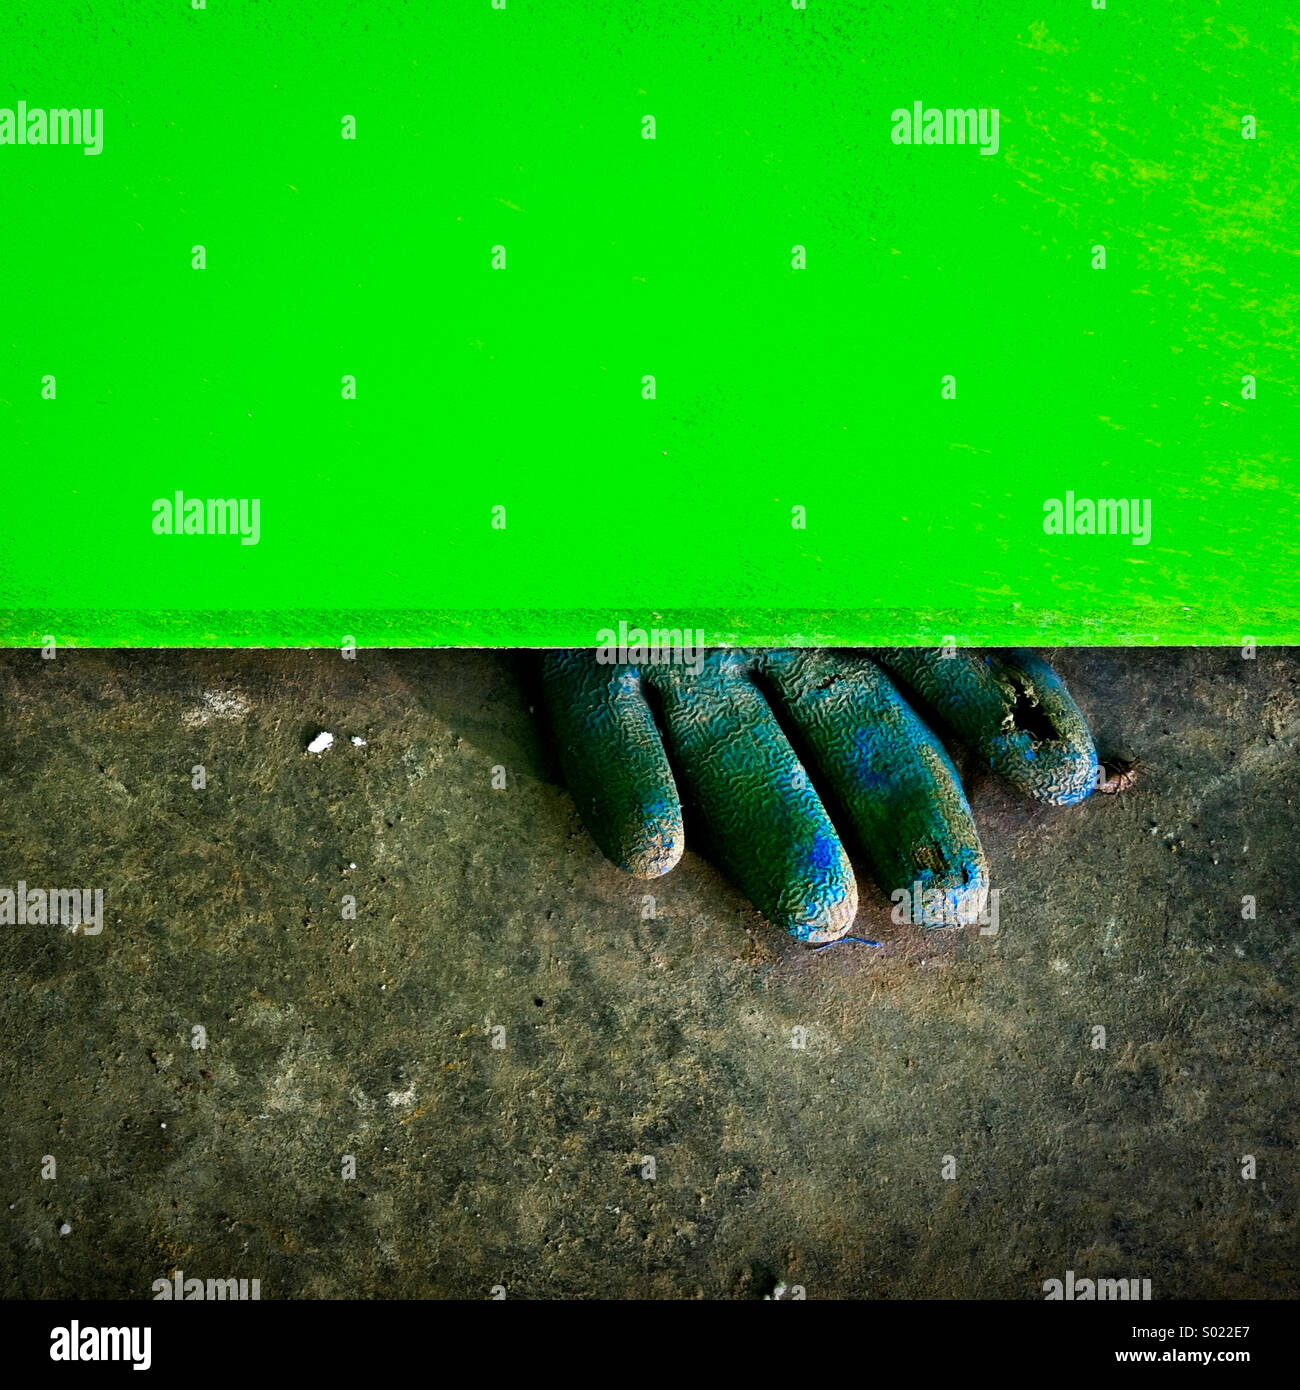 A dirty blue rubber glove peeks out from beneath a green board - Stock Image